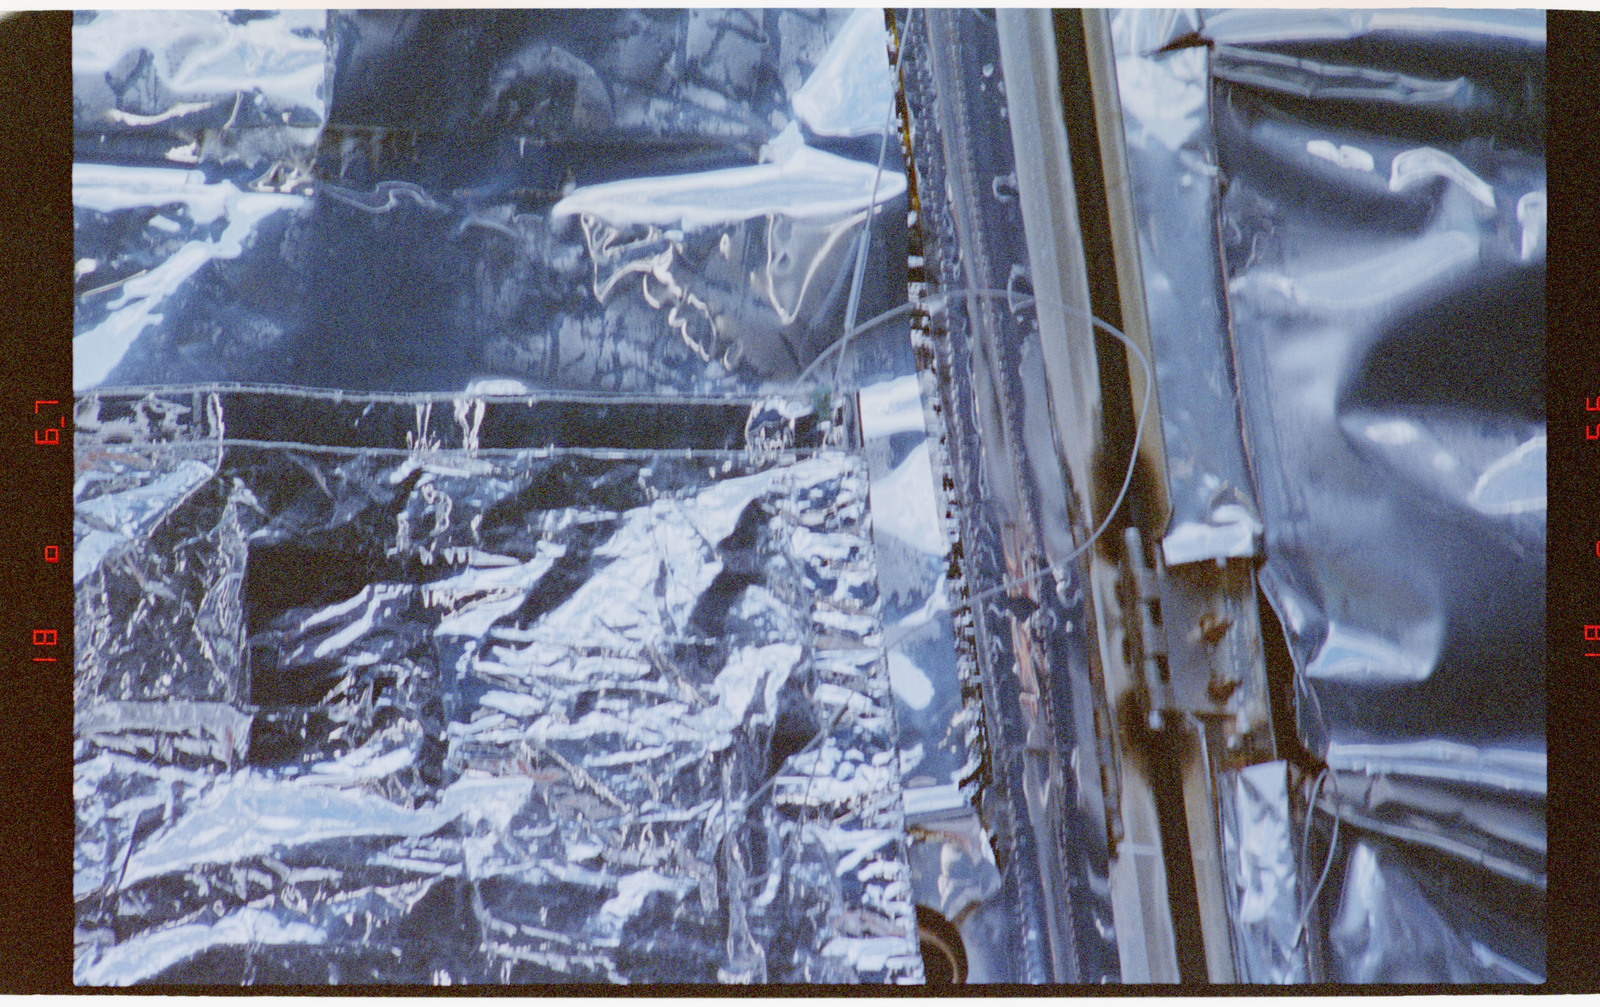 STS082-357-017 - STS-082 - HST, closeup details of Multilayer Insulation (MLI) patches installed